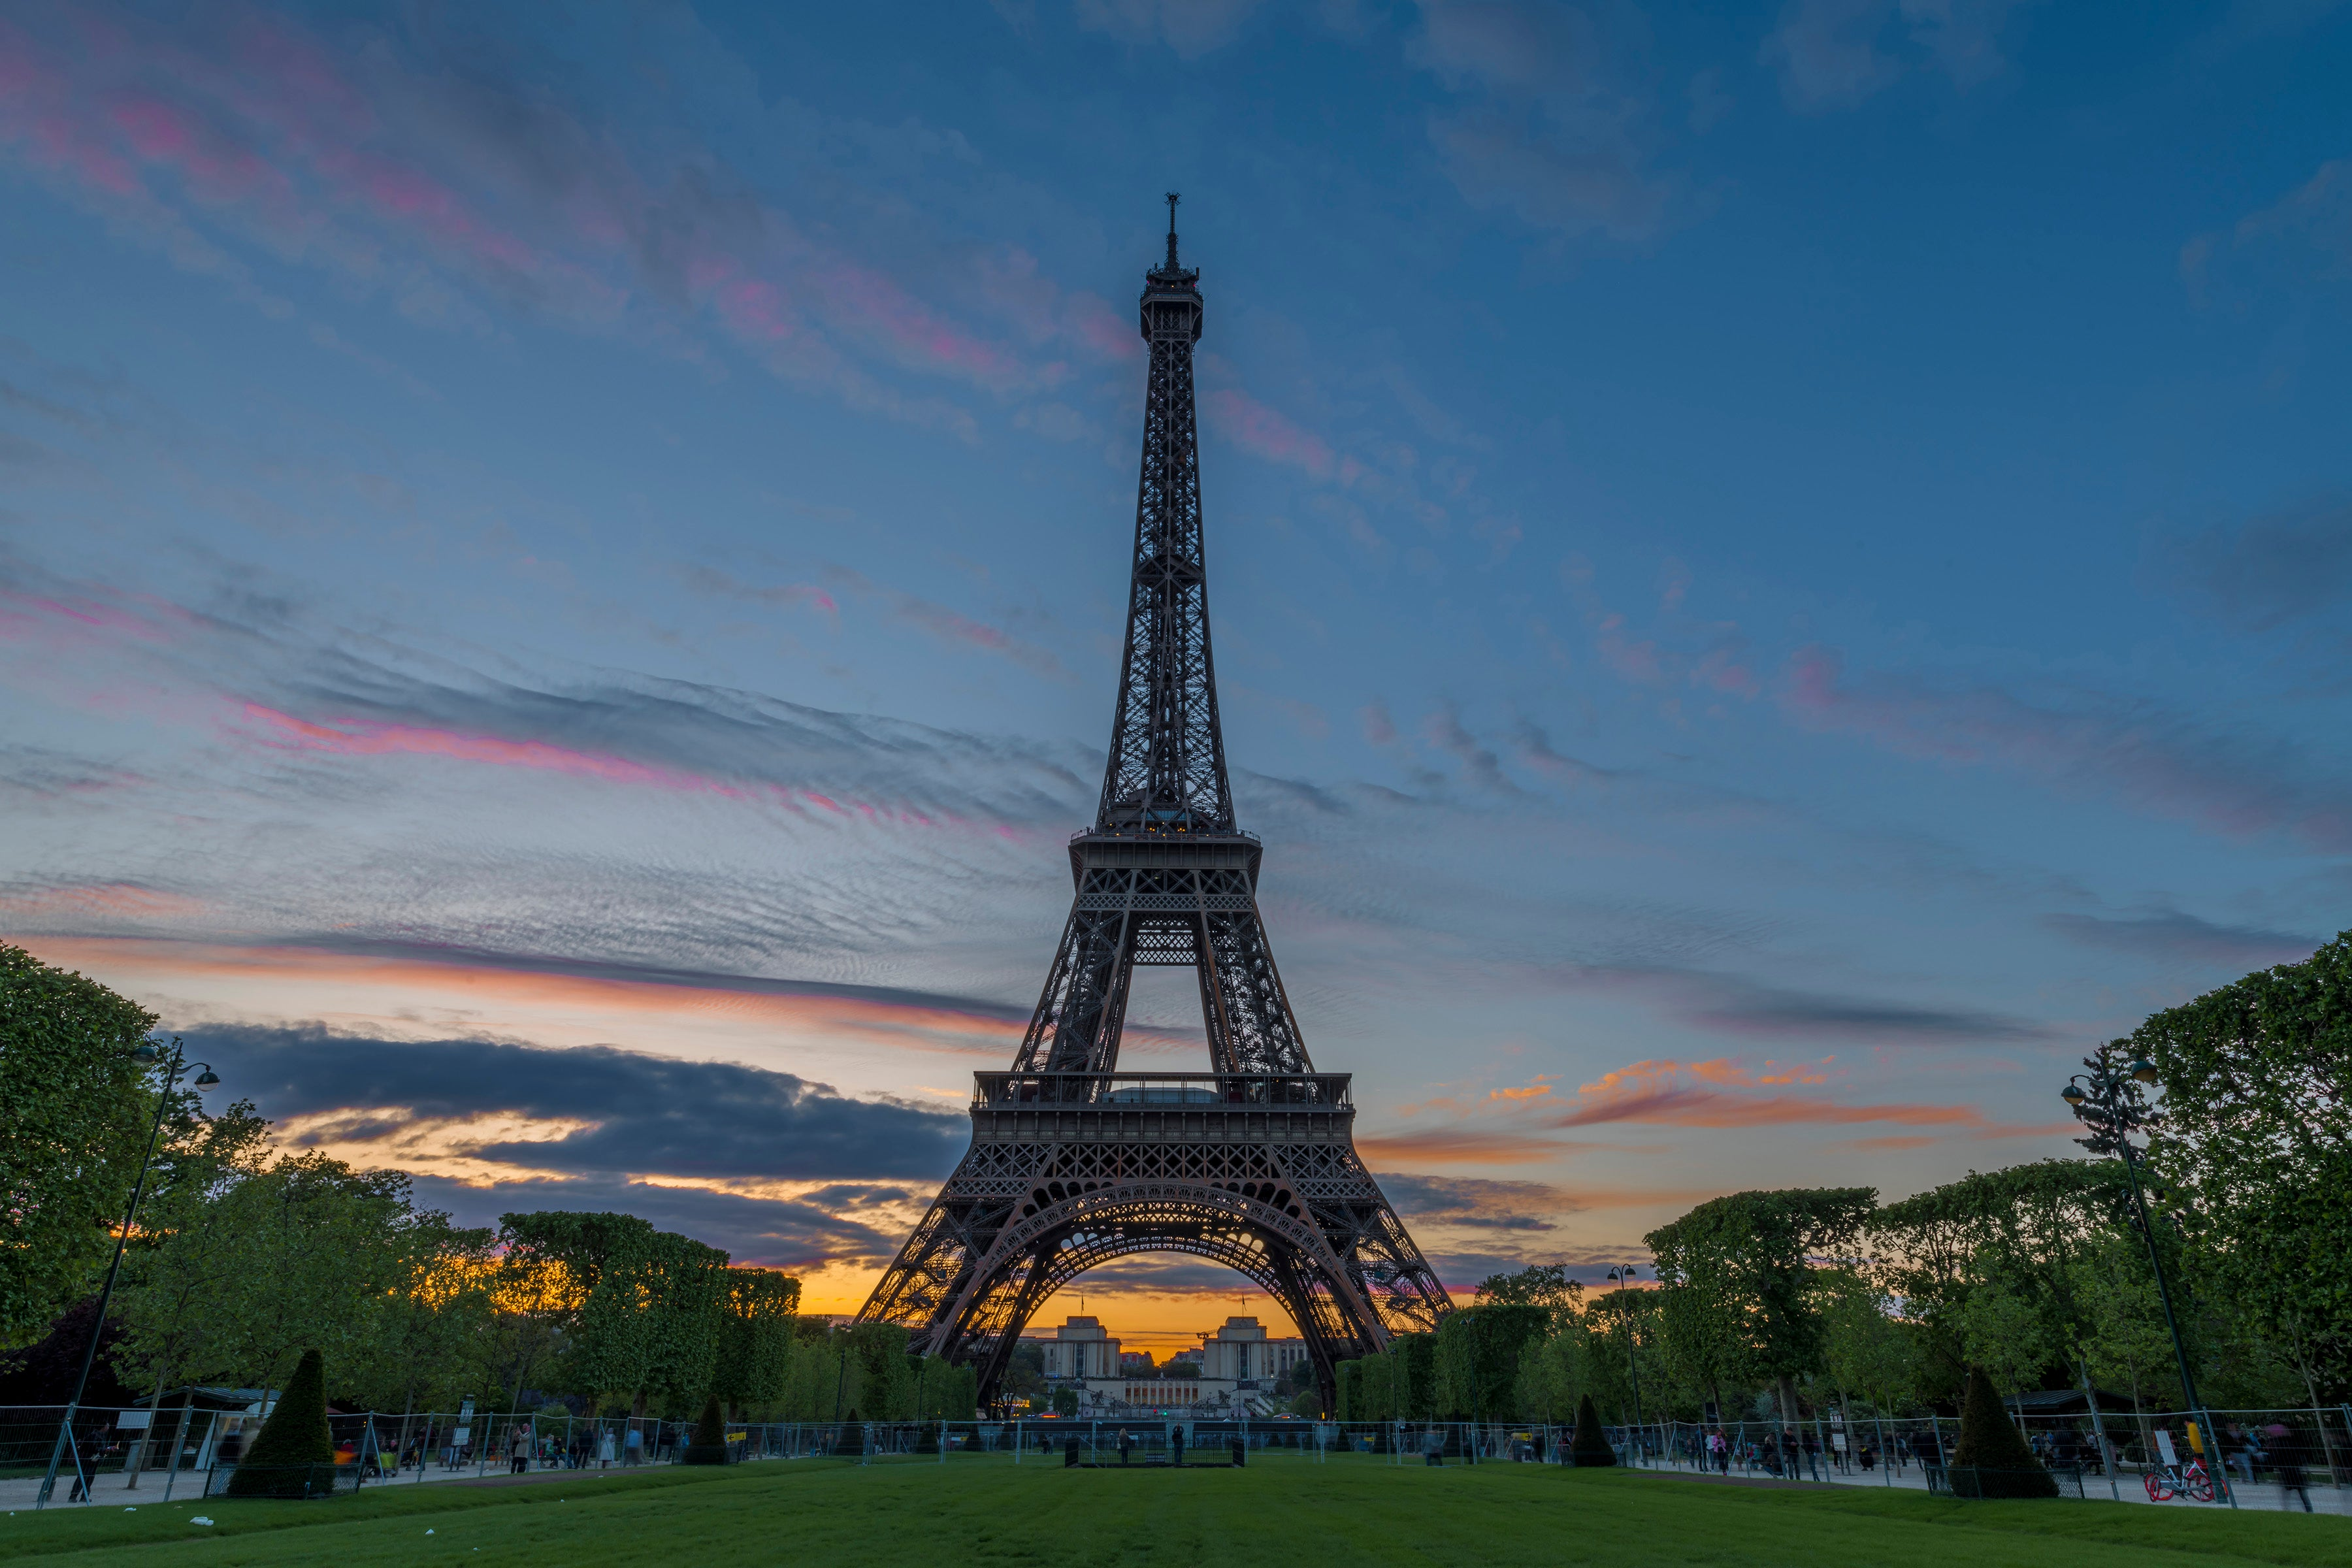 Dusk over Paris and the Eiffel Tower